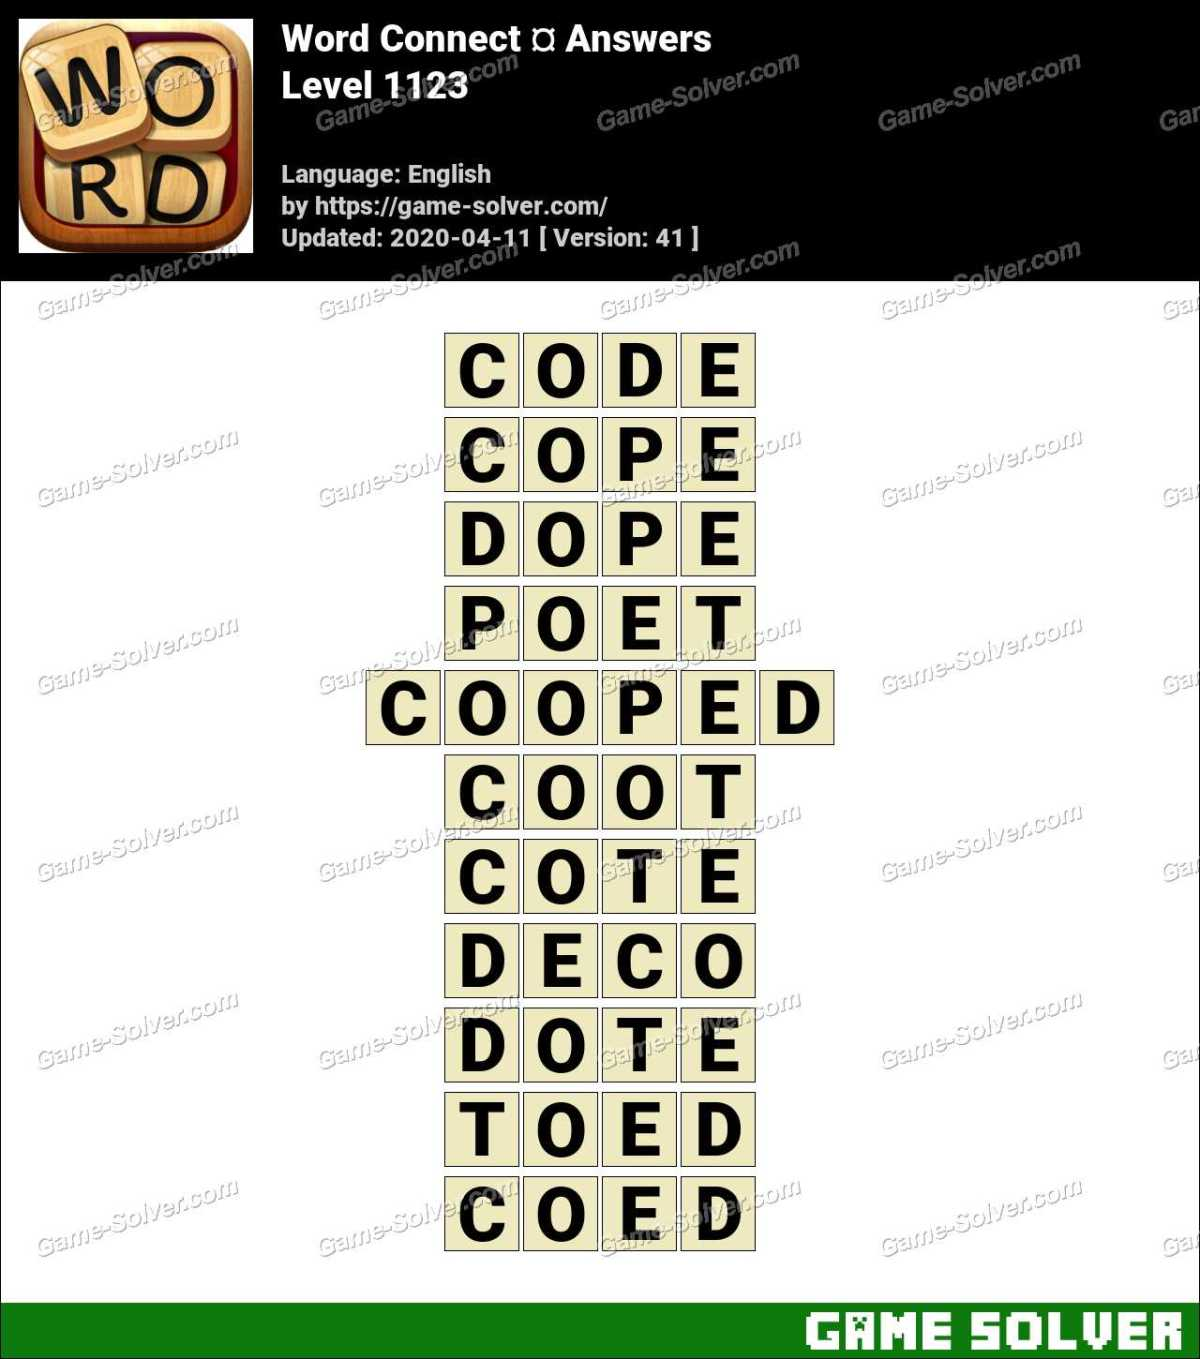 Word Connect Level 1123 Answers